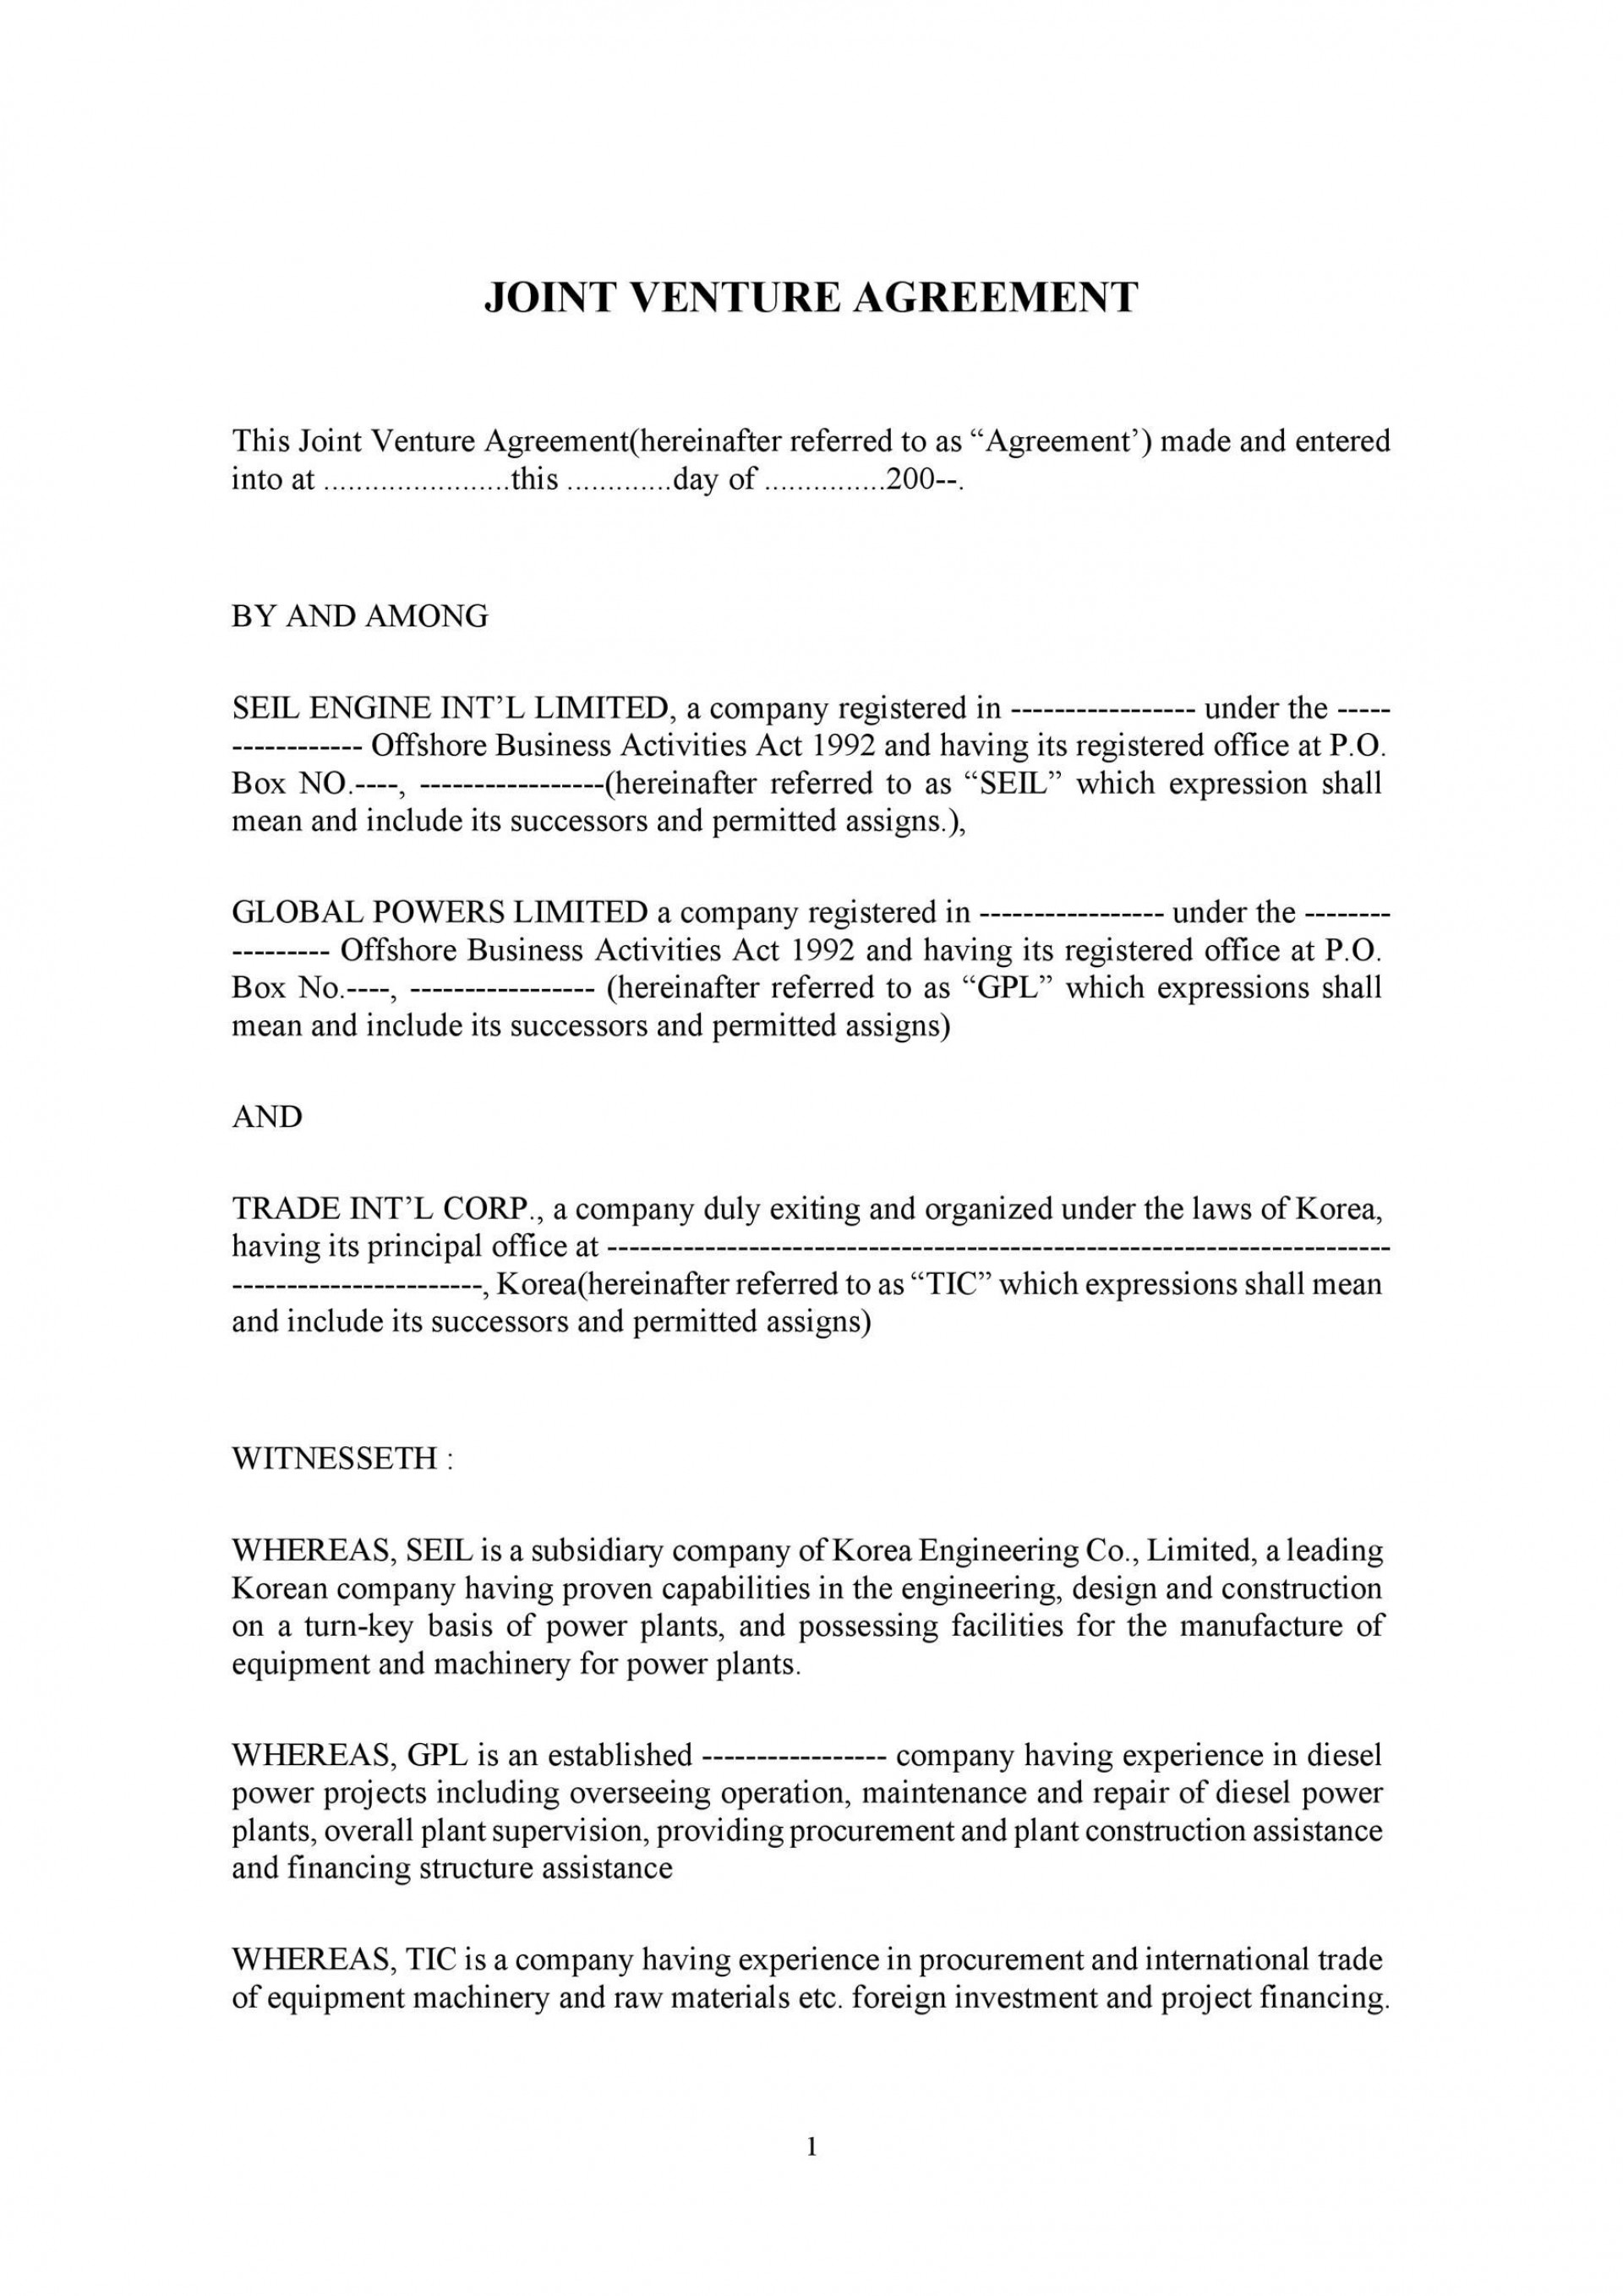 005 Awful Free Simple Joint Venture Agreement Template High Resolution 1920